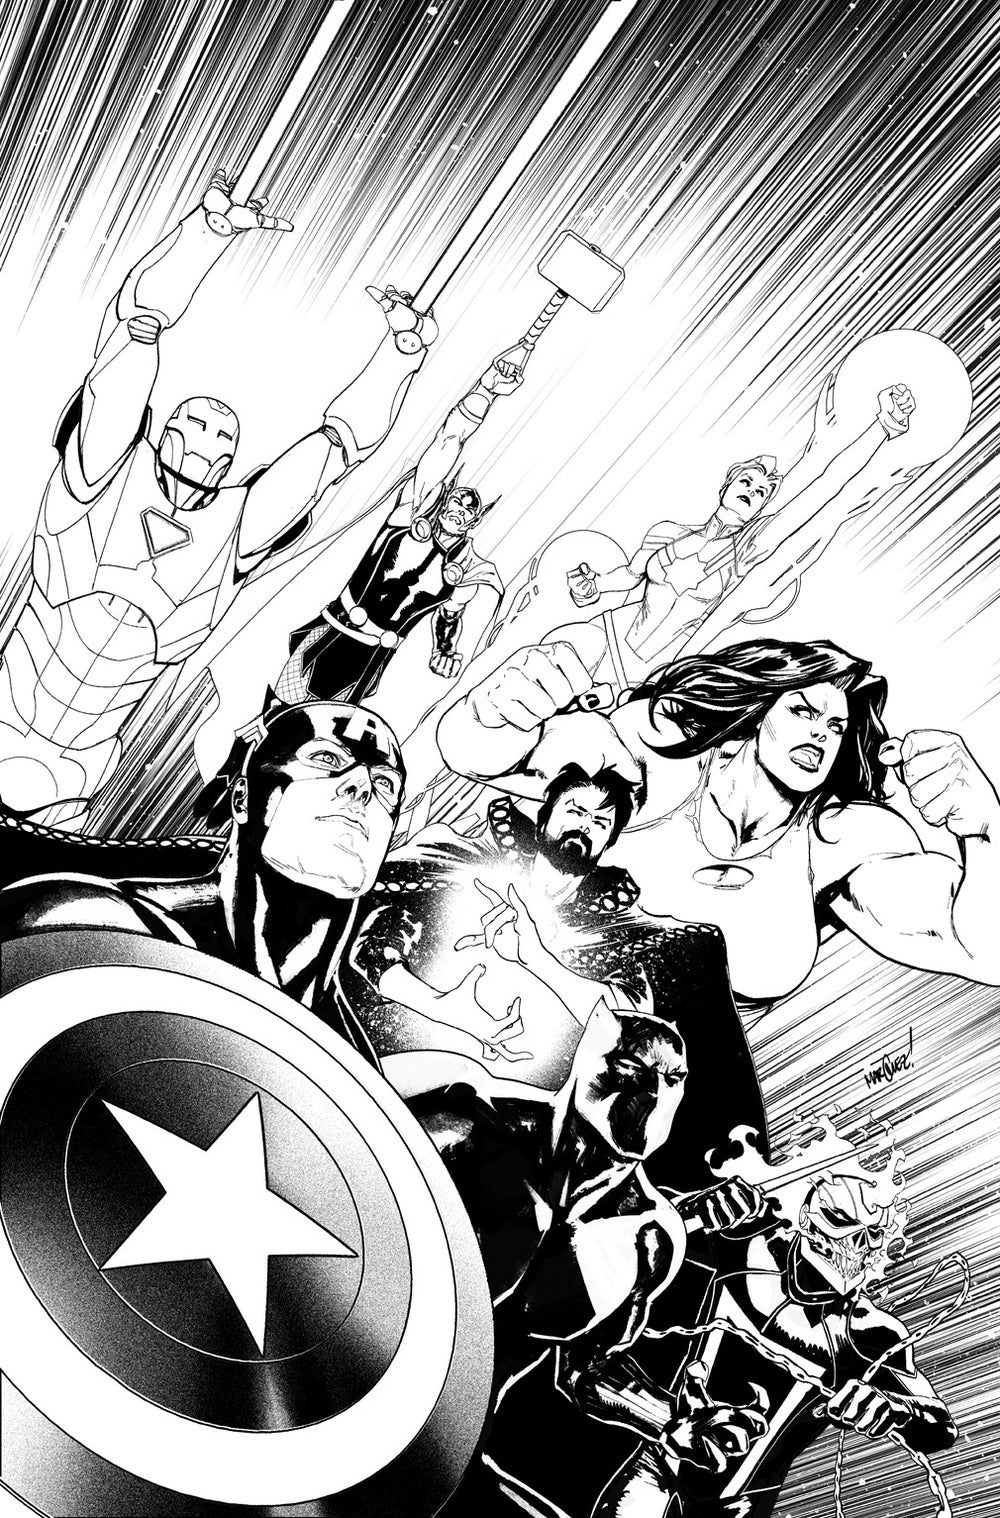 Image of AVENGERS #2 VARIANT COVER